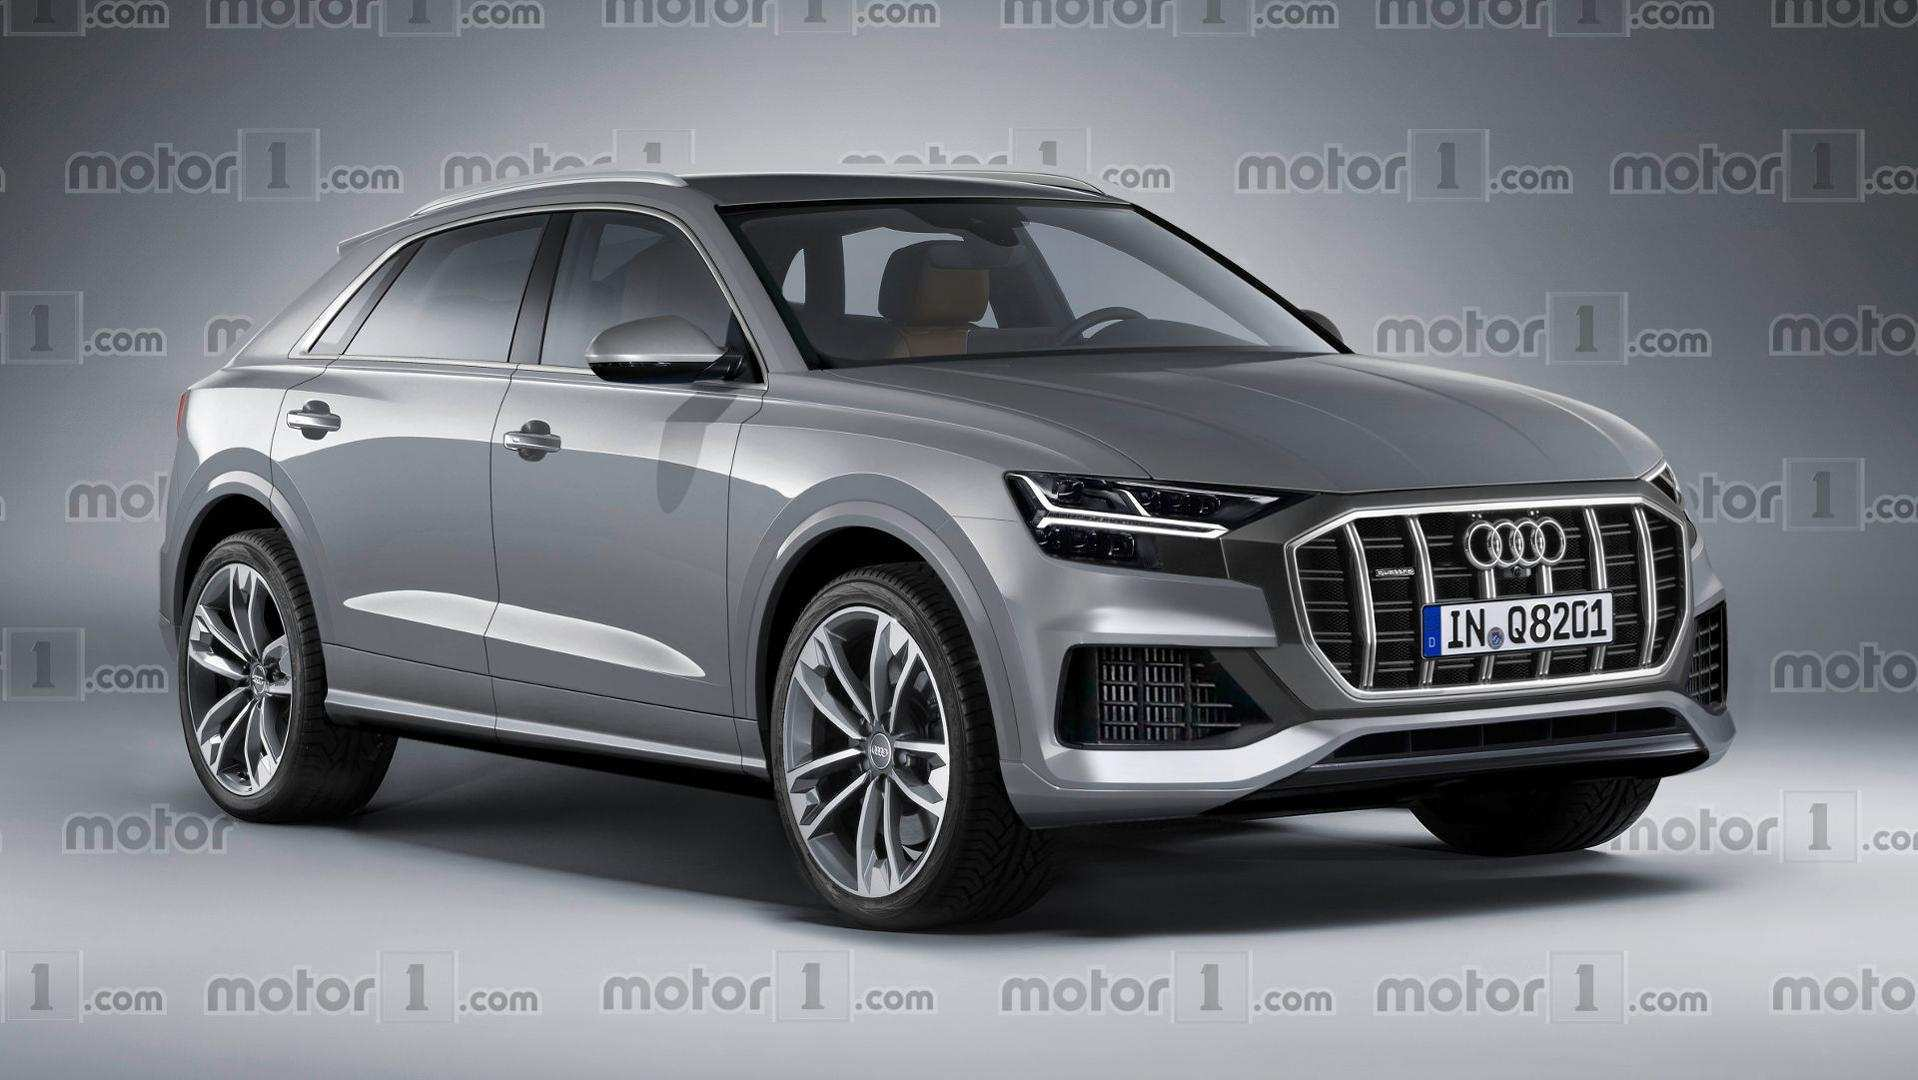 62 Great New When Will 2019 Audi Q7 Be Available New Engine Engine with New When Will 2019 Audi Q7 Be Available New Engine